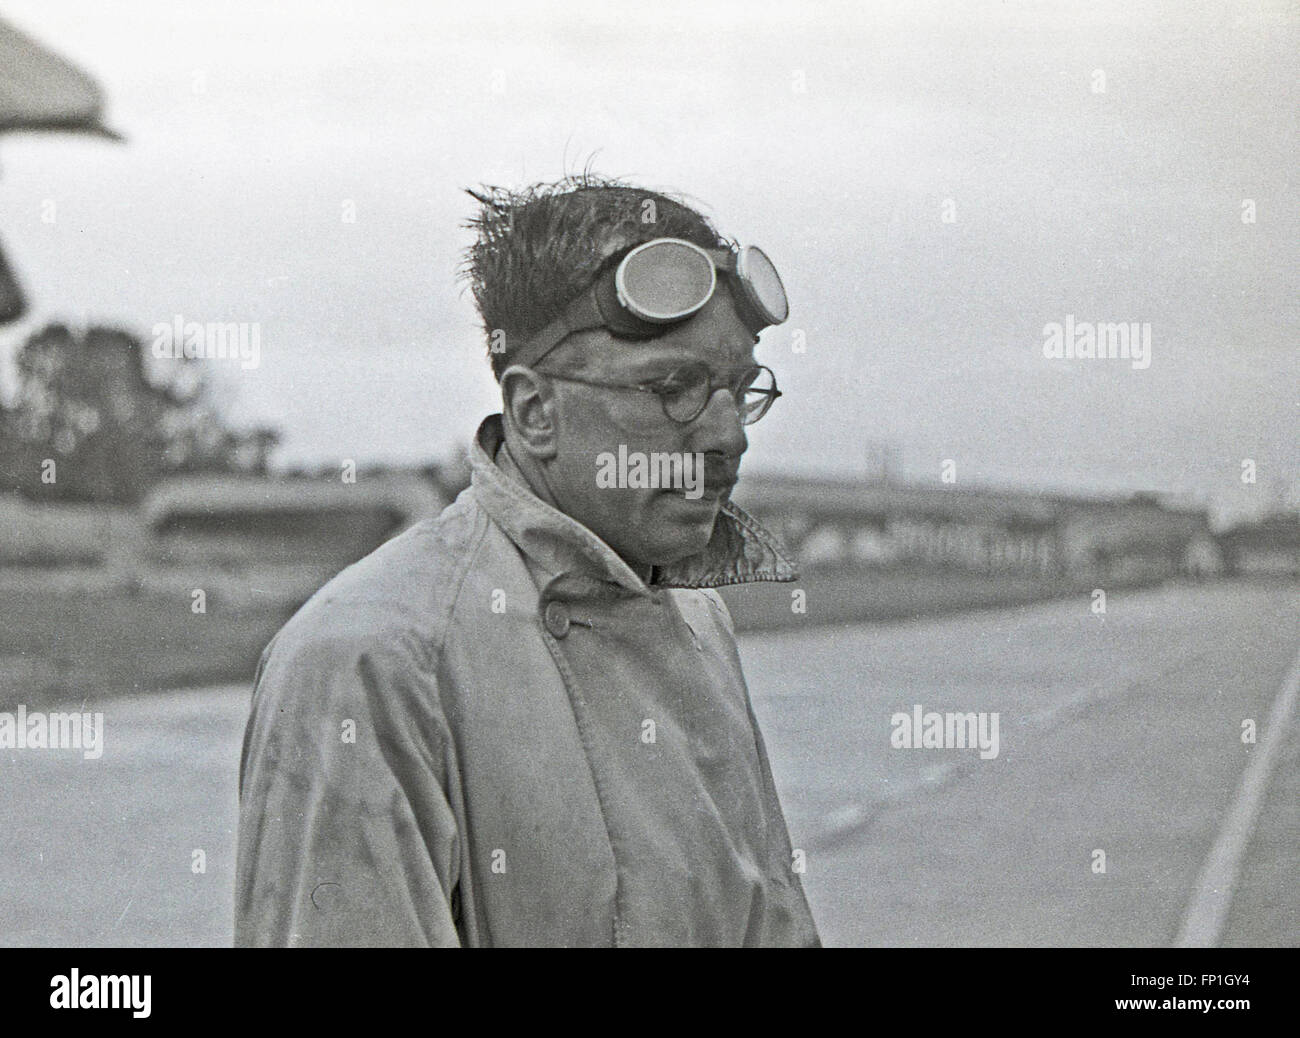 1930s, Historical picture. Racing driver Hugh Curling-Hunter at Brooklands after a race. - Stock Image